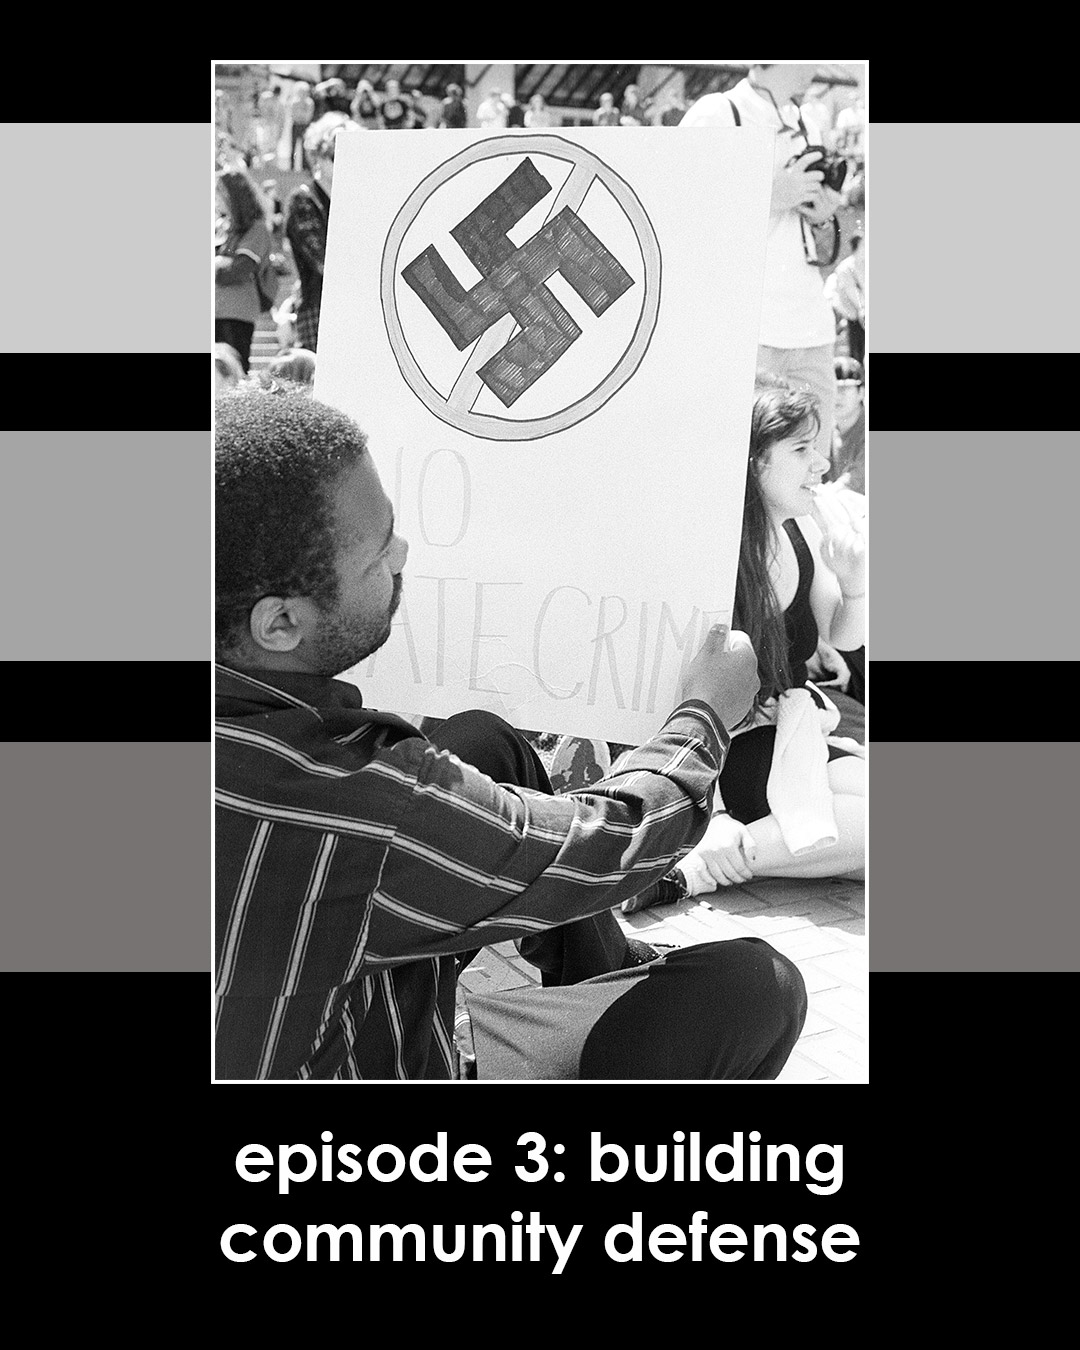 An image with the words Episode three, Building Community Defense below an image of someone holding an antifascist sign